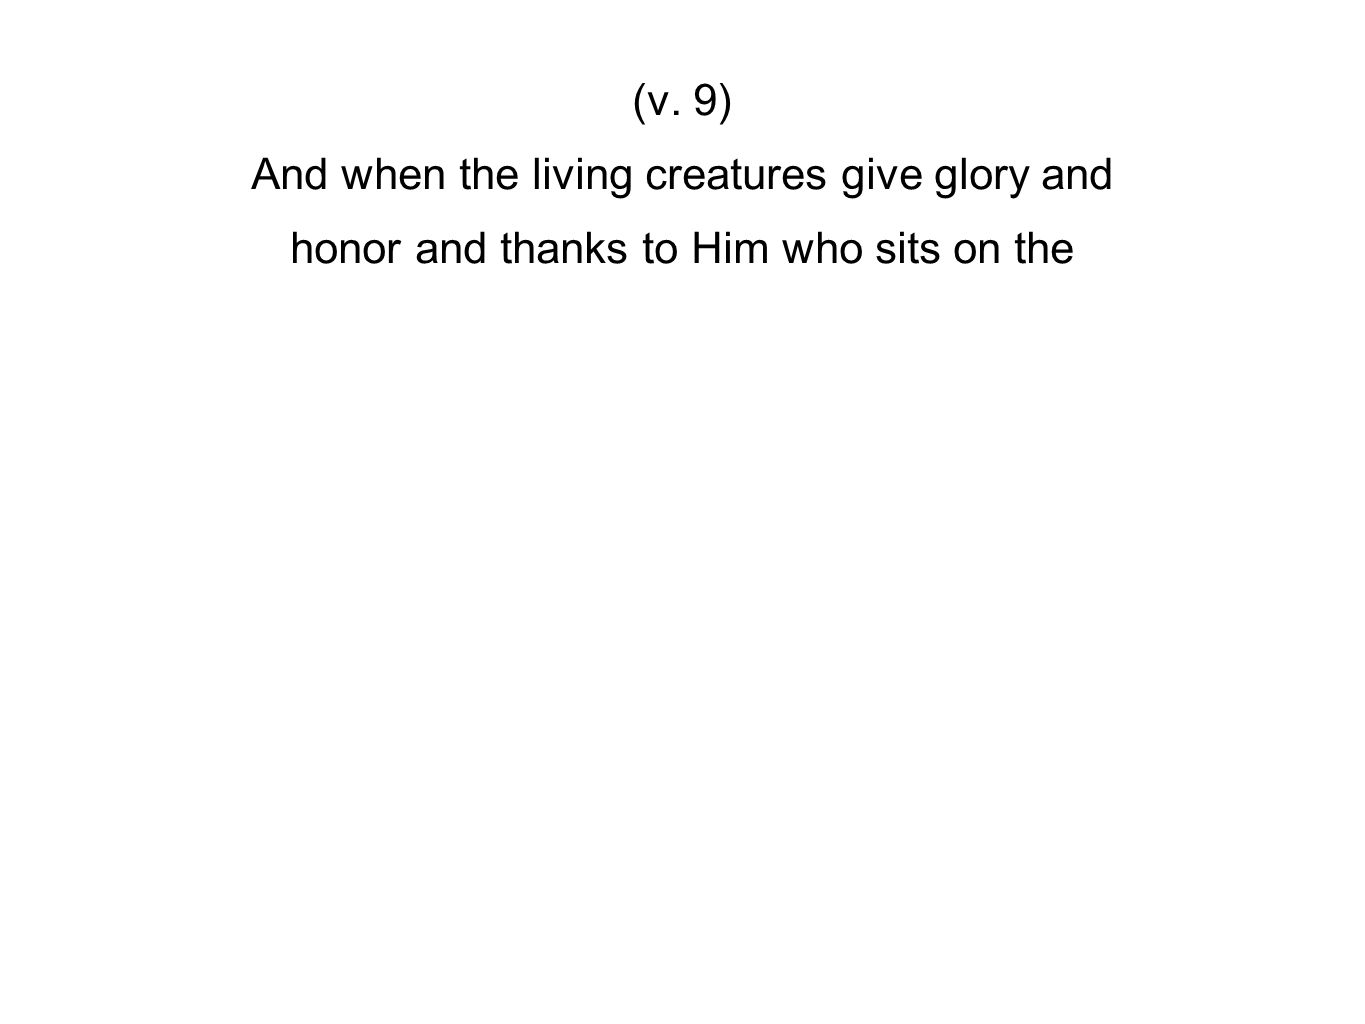 (v. 9) And when the living creatures give glory and honor and thanks to Him who sits on the